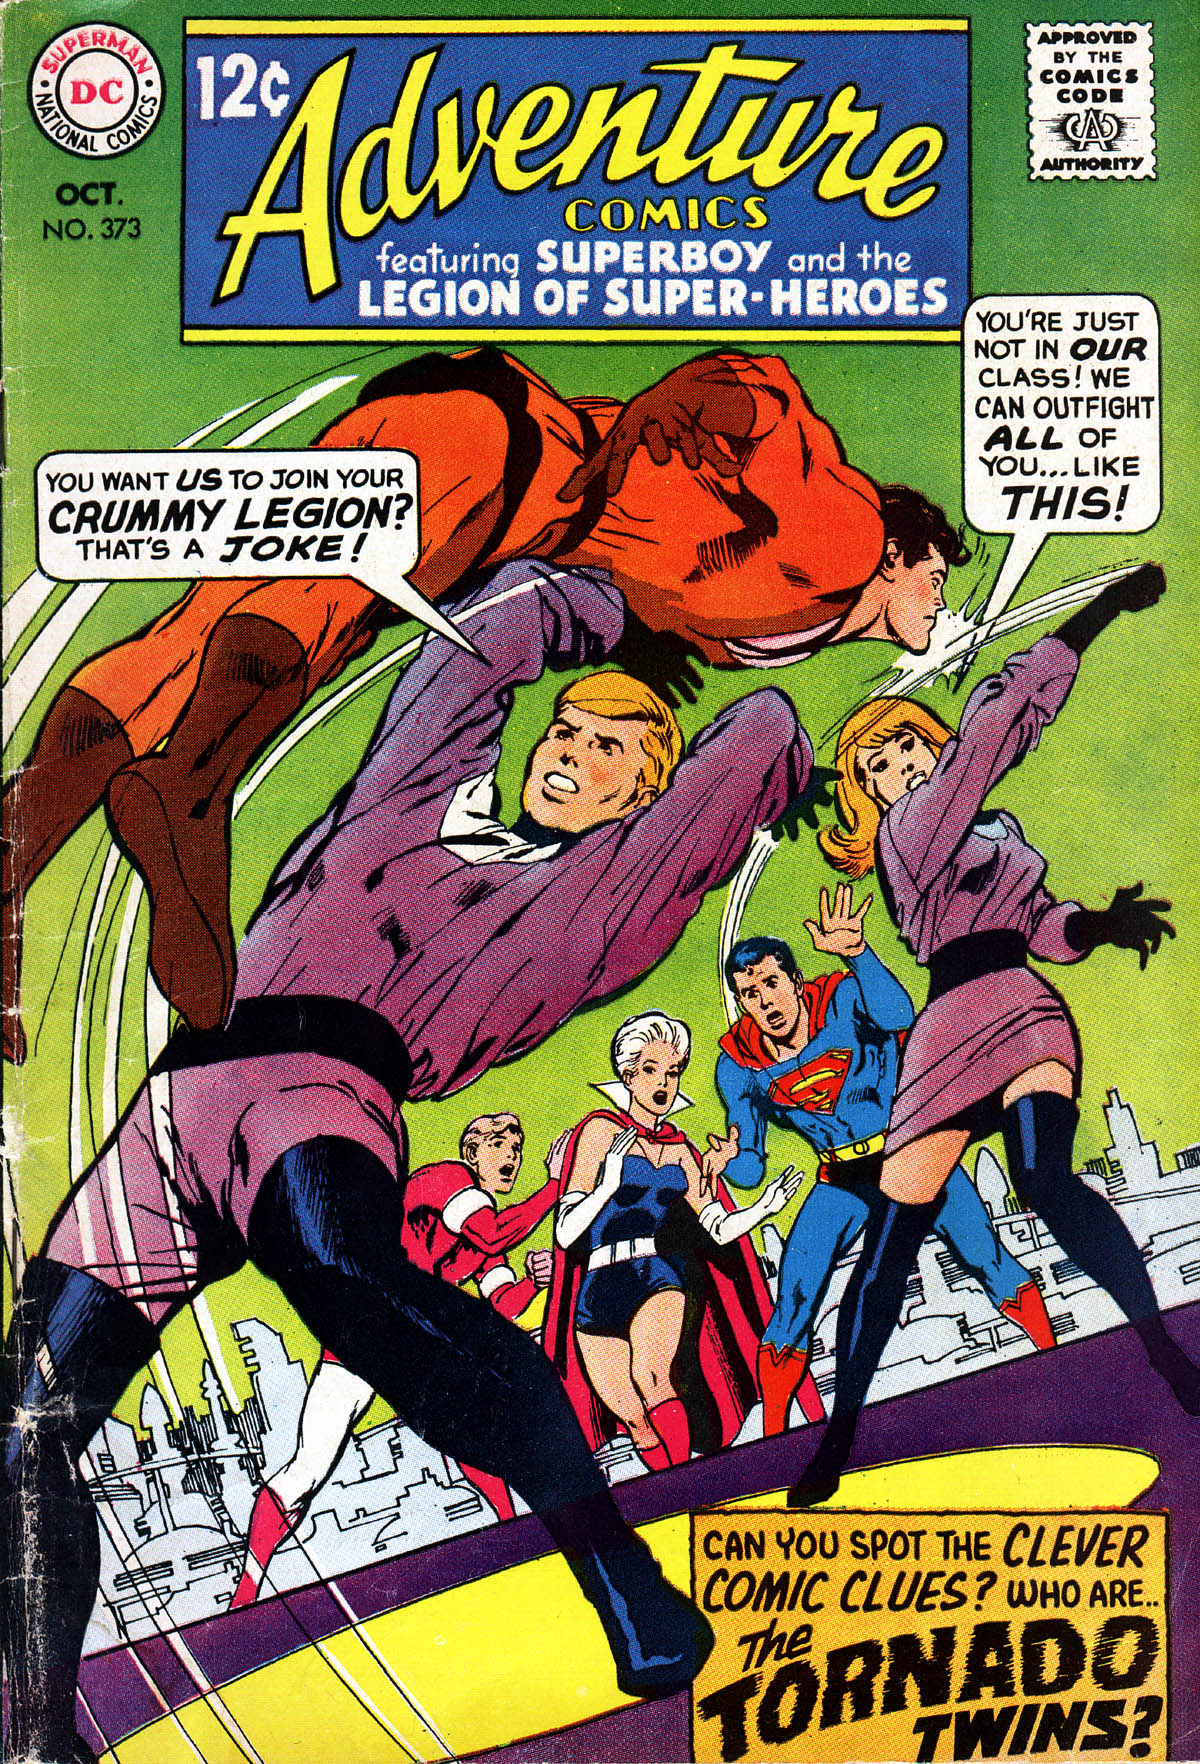 Read online Adventure Comics (1938) comic -  Issue #373 - 1